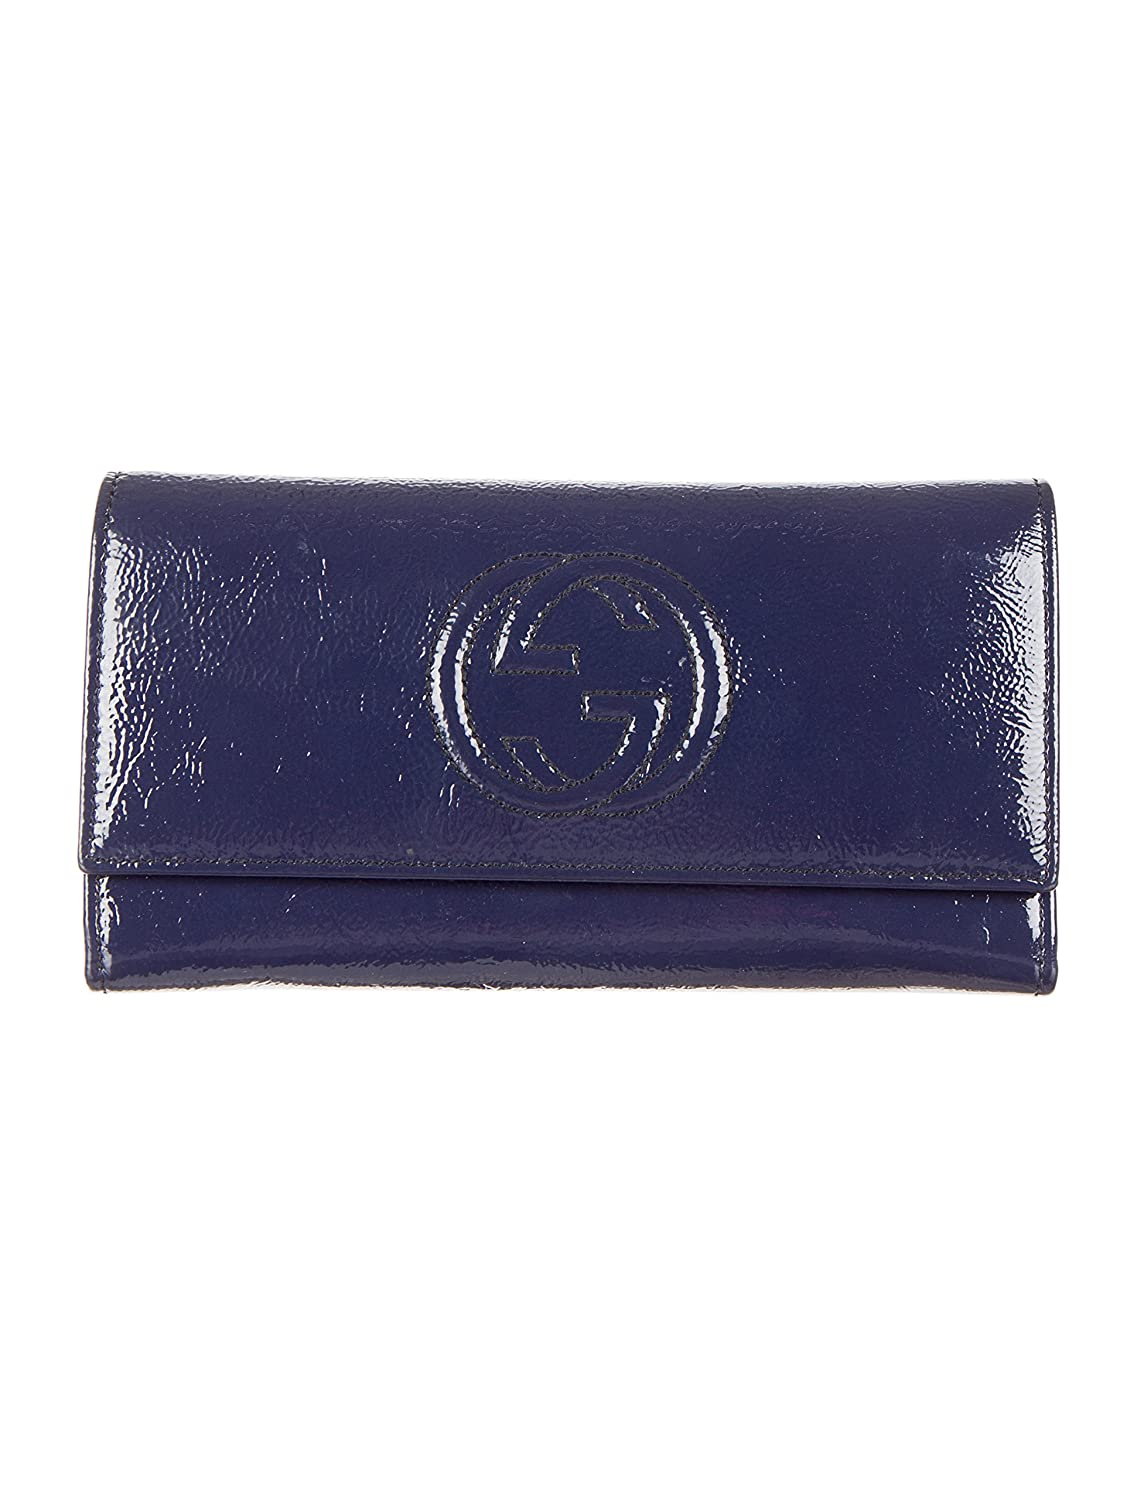 1e2f77223a2cc1 Top1: Gucci 'Soho' Patent Leather Continental Wallet, Navy Blue 282414